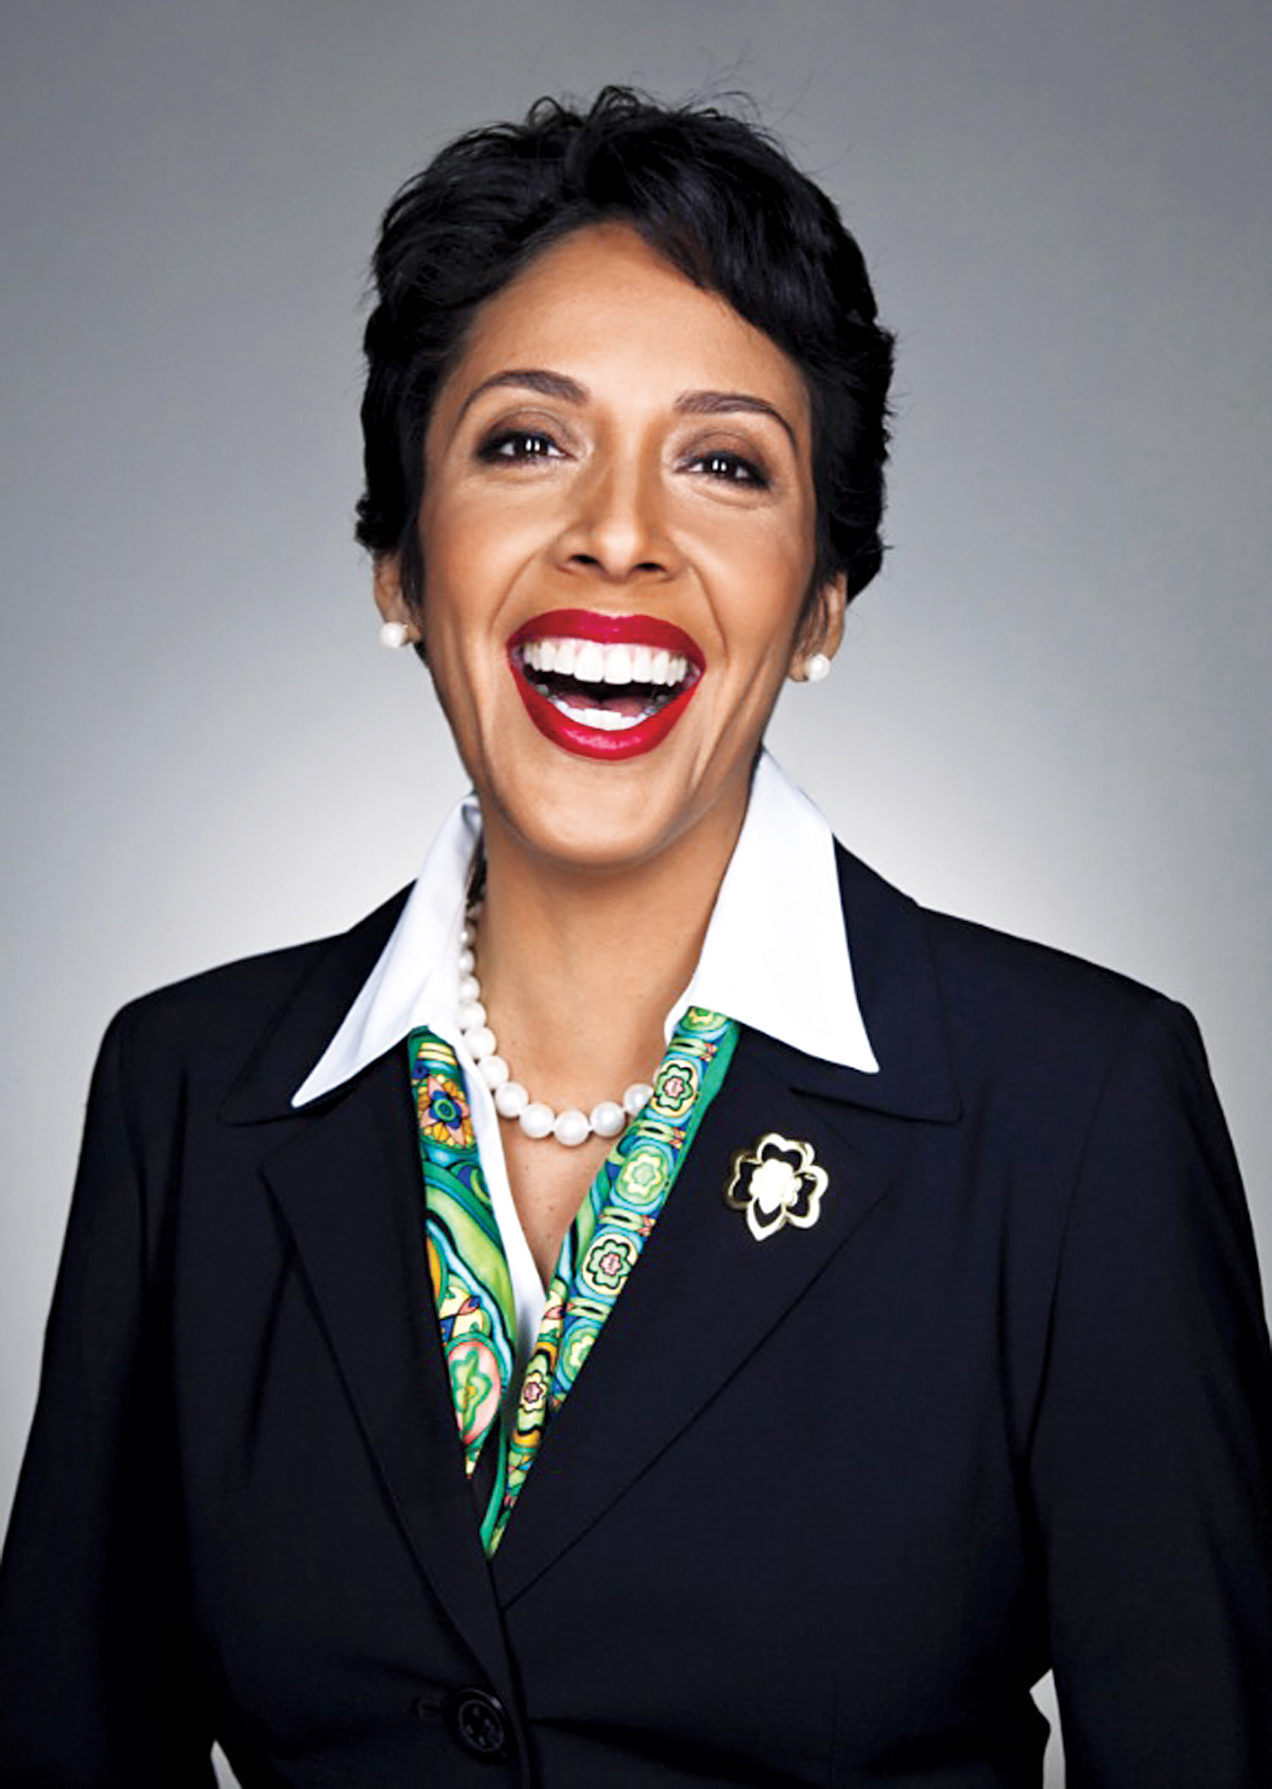 anna-maria-chavez-girls-scouts-ceo